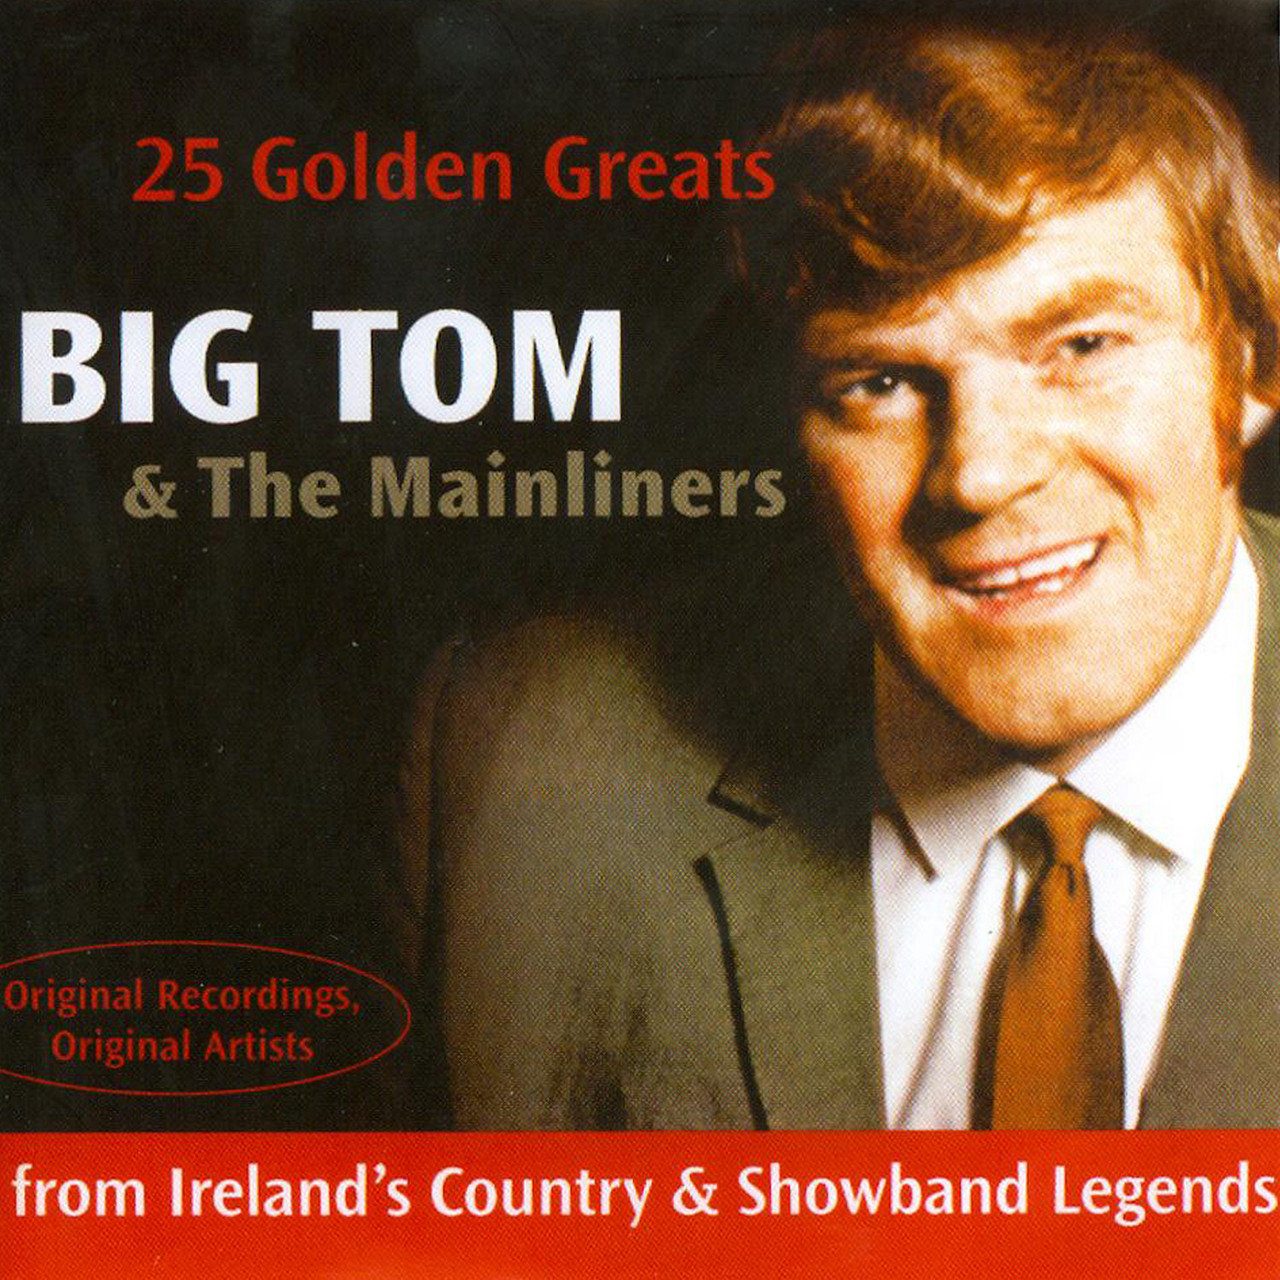 Big tom a love thats lasted through the years